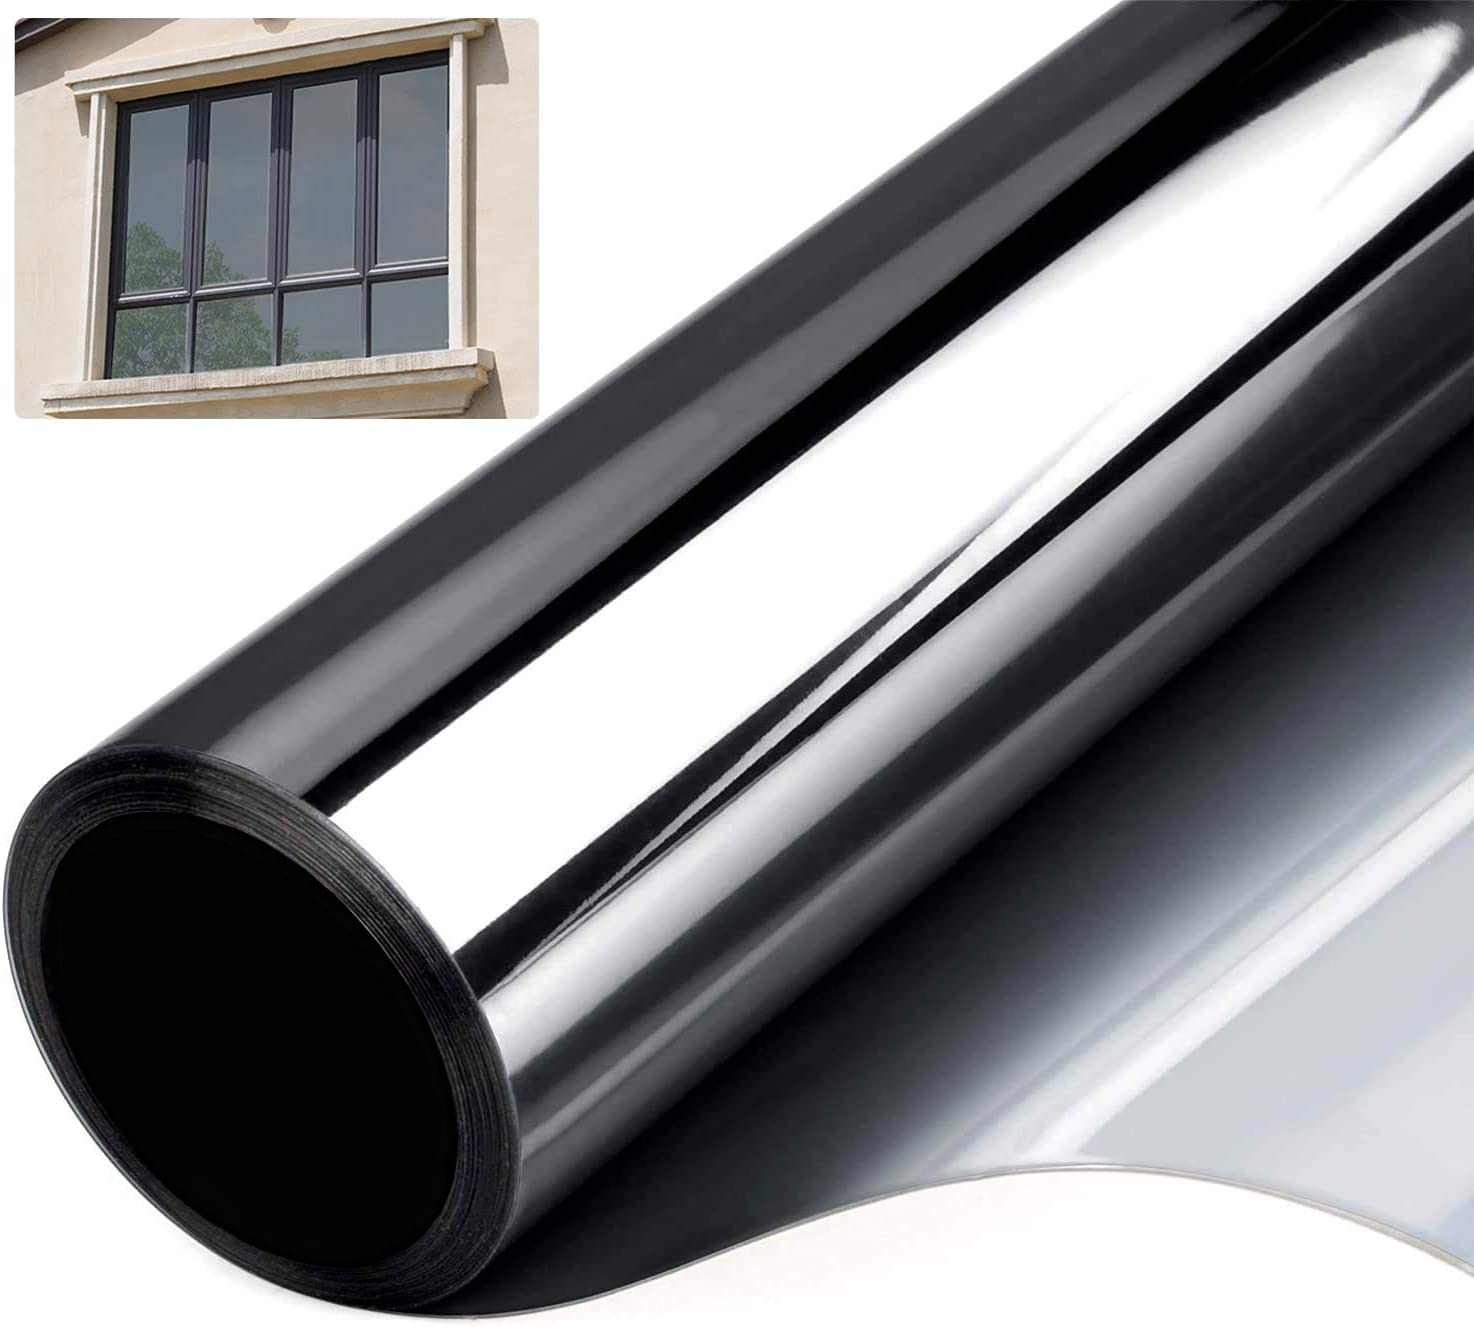 Window Film Privacy One Way Mirror Privacy Film for Glass Windows UV Blocking Heat Insulation Sun Blocking Screen Stickers Decorative Window Tinting Film for Office Home Kitchen Meeting Living Room